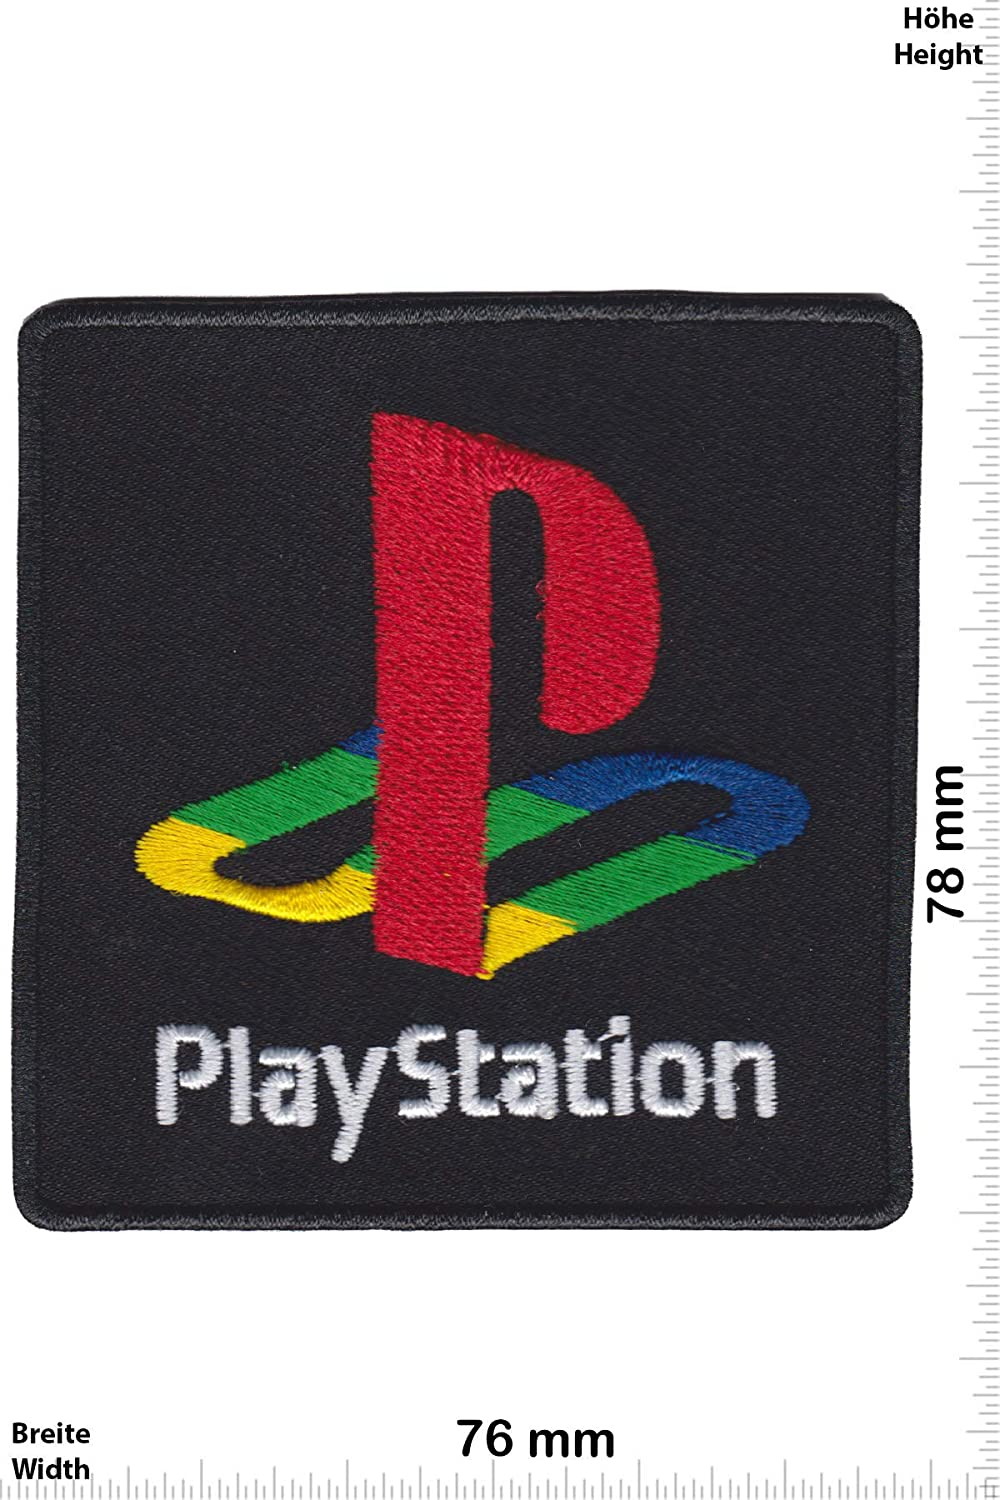 Patch - Playstation - Sony - Nerd -Nerd -Sony - Iron on Applique Embroidery Écusson brodé Costume Cadeau- Give